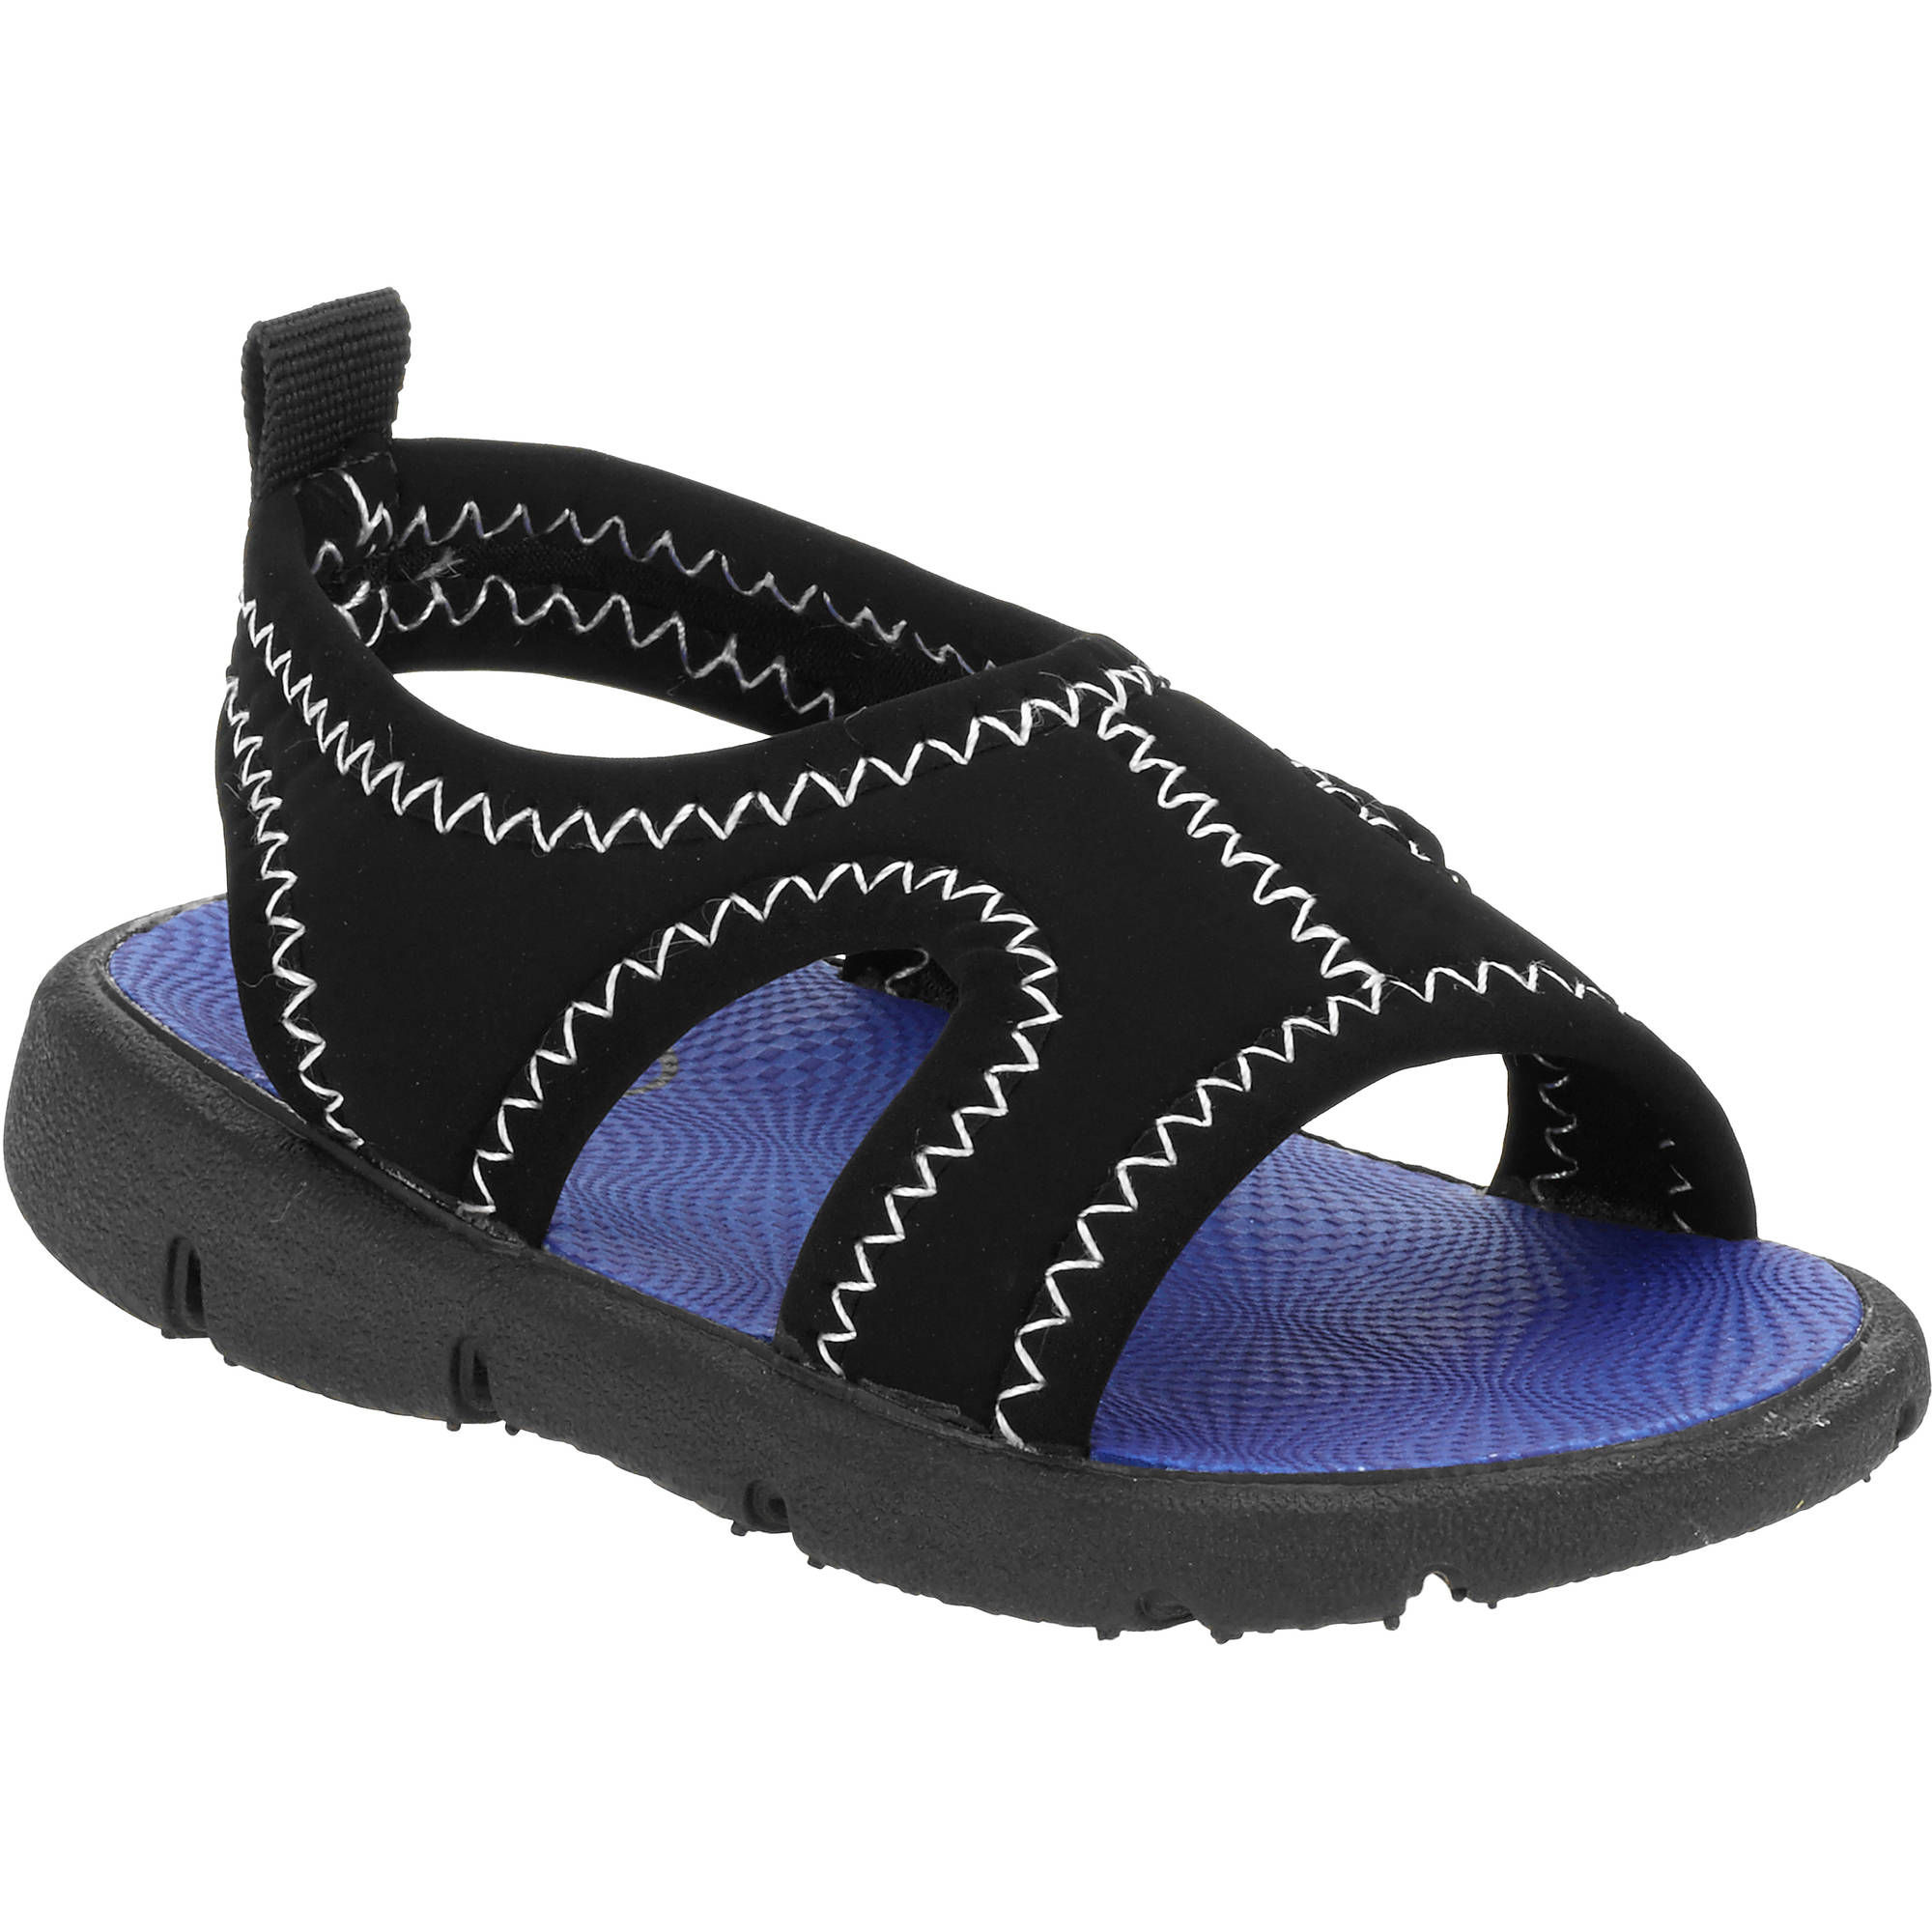 Youth black sandals